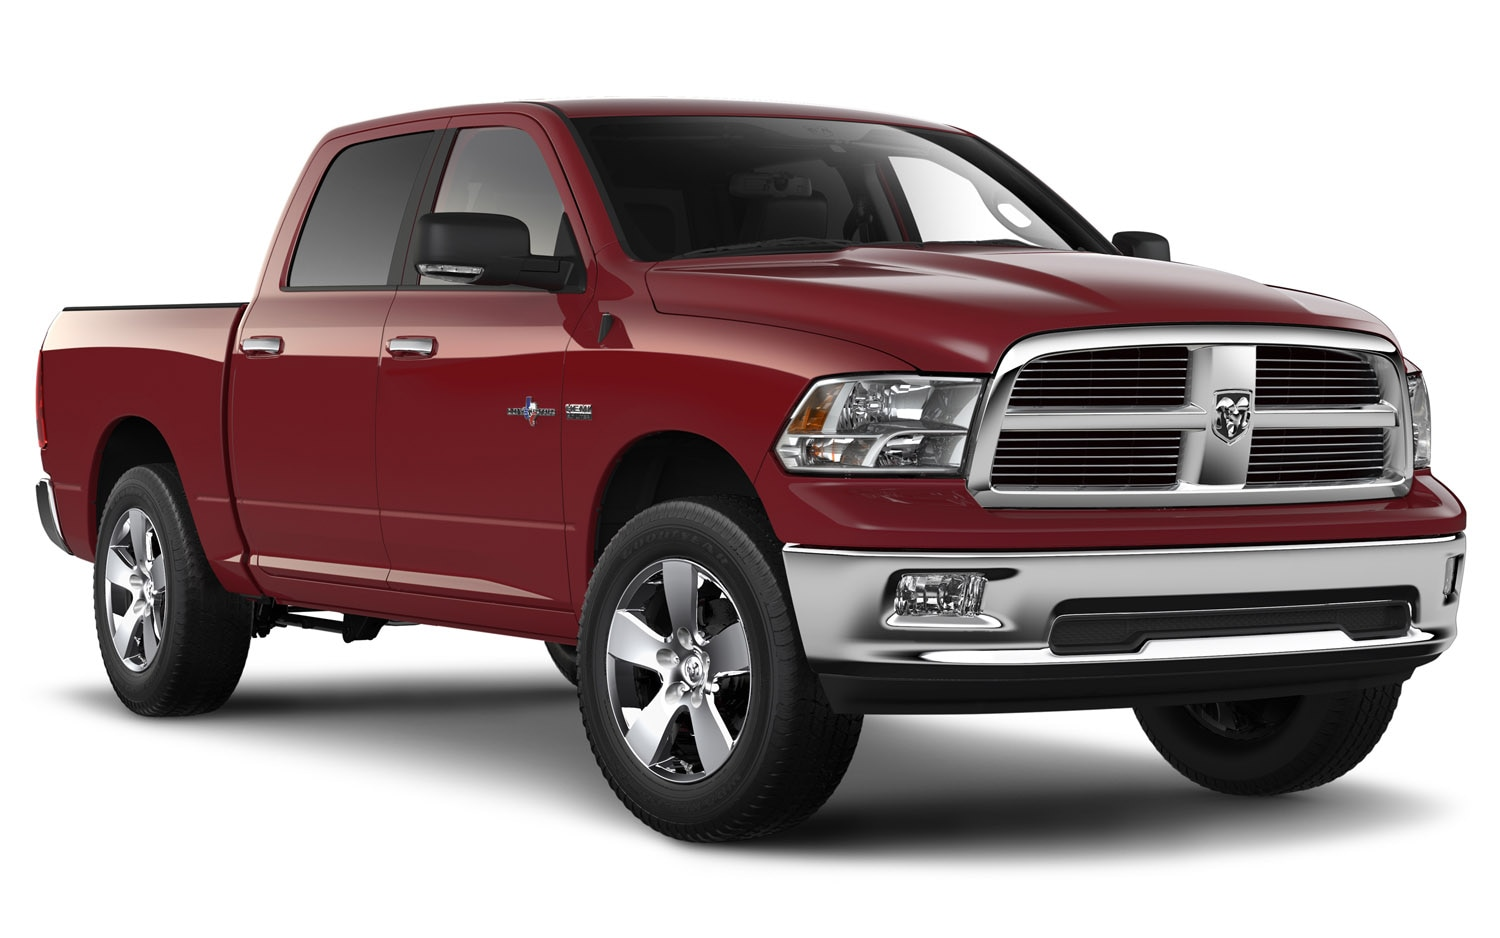 2012 Dodge Ram Lone Star 10th Anniversary Front Three Quarter1